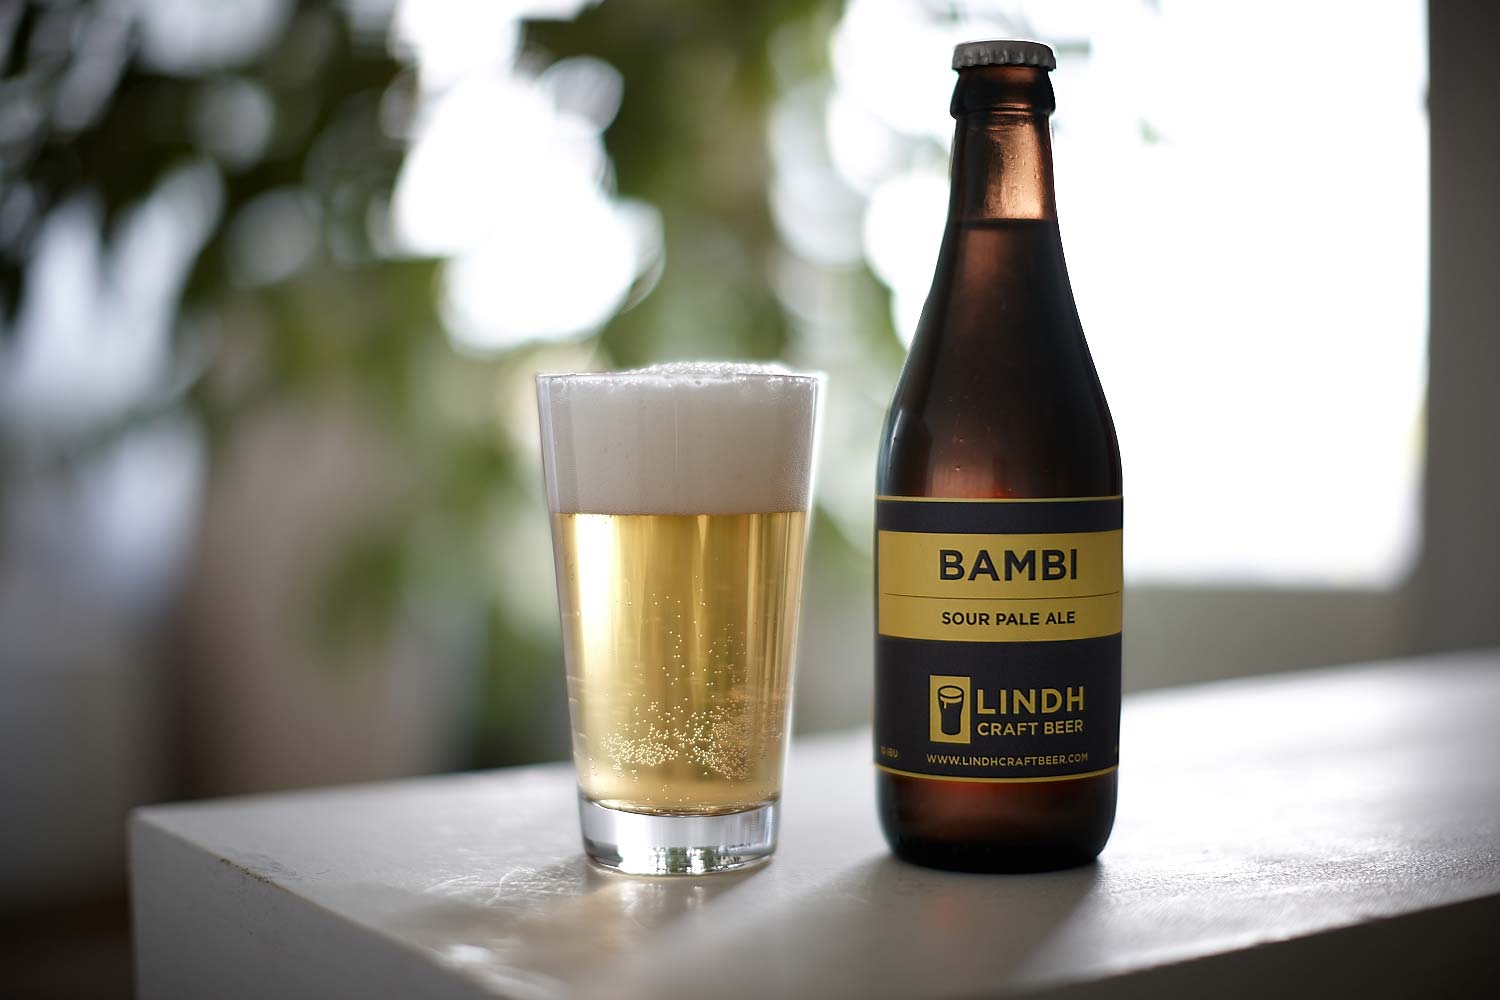 150419_lindh_craft_beer_bambi_sour_pale_ale_0001